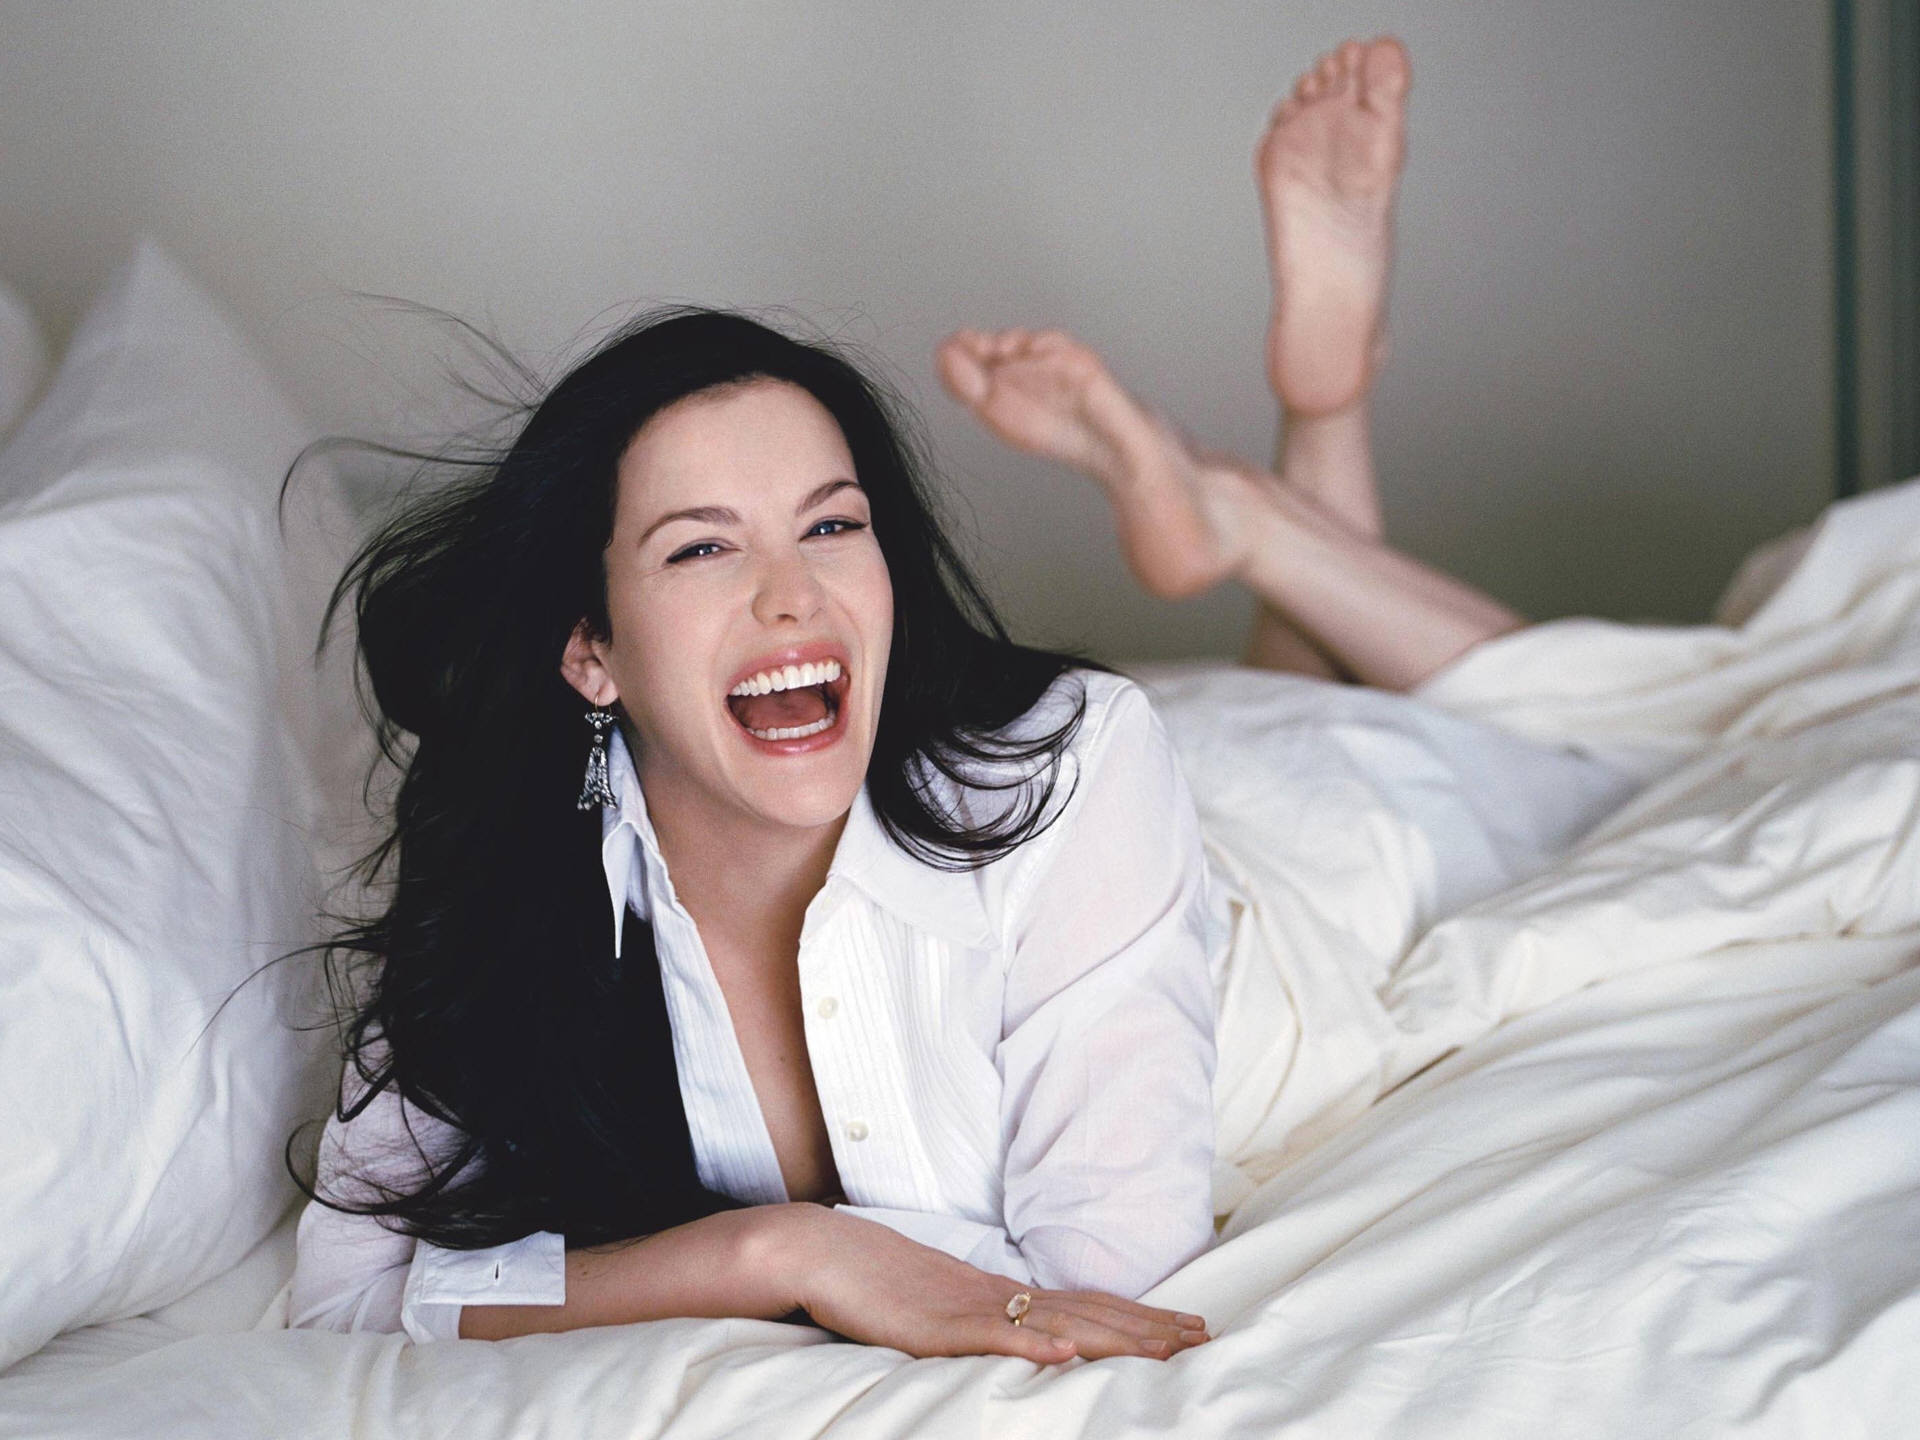 woman feet Liv Tyler HD Wallpaper